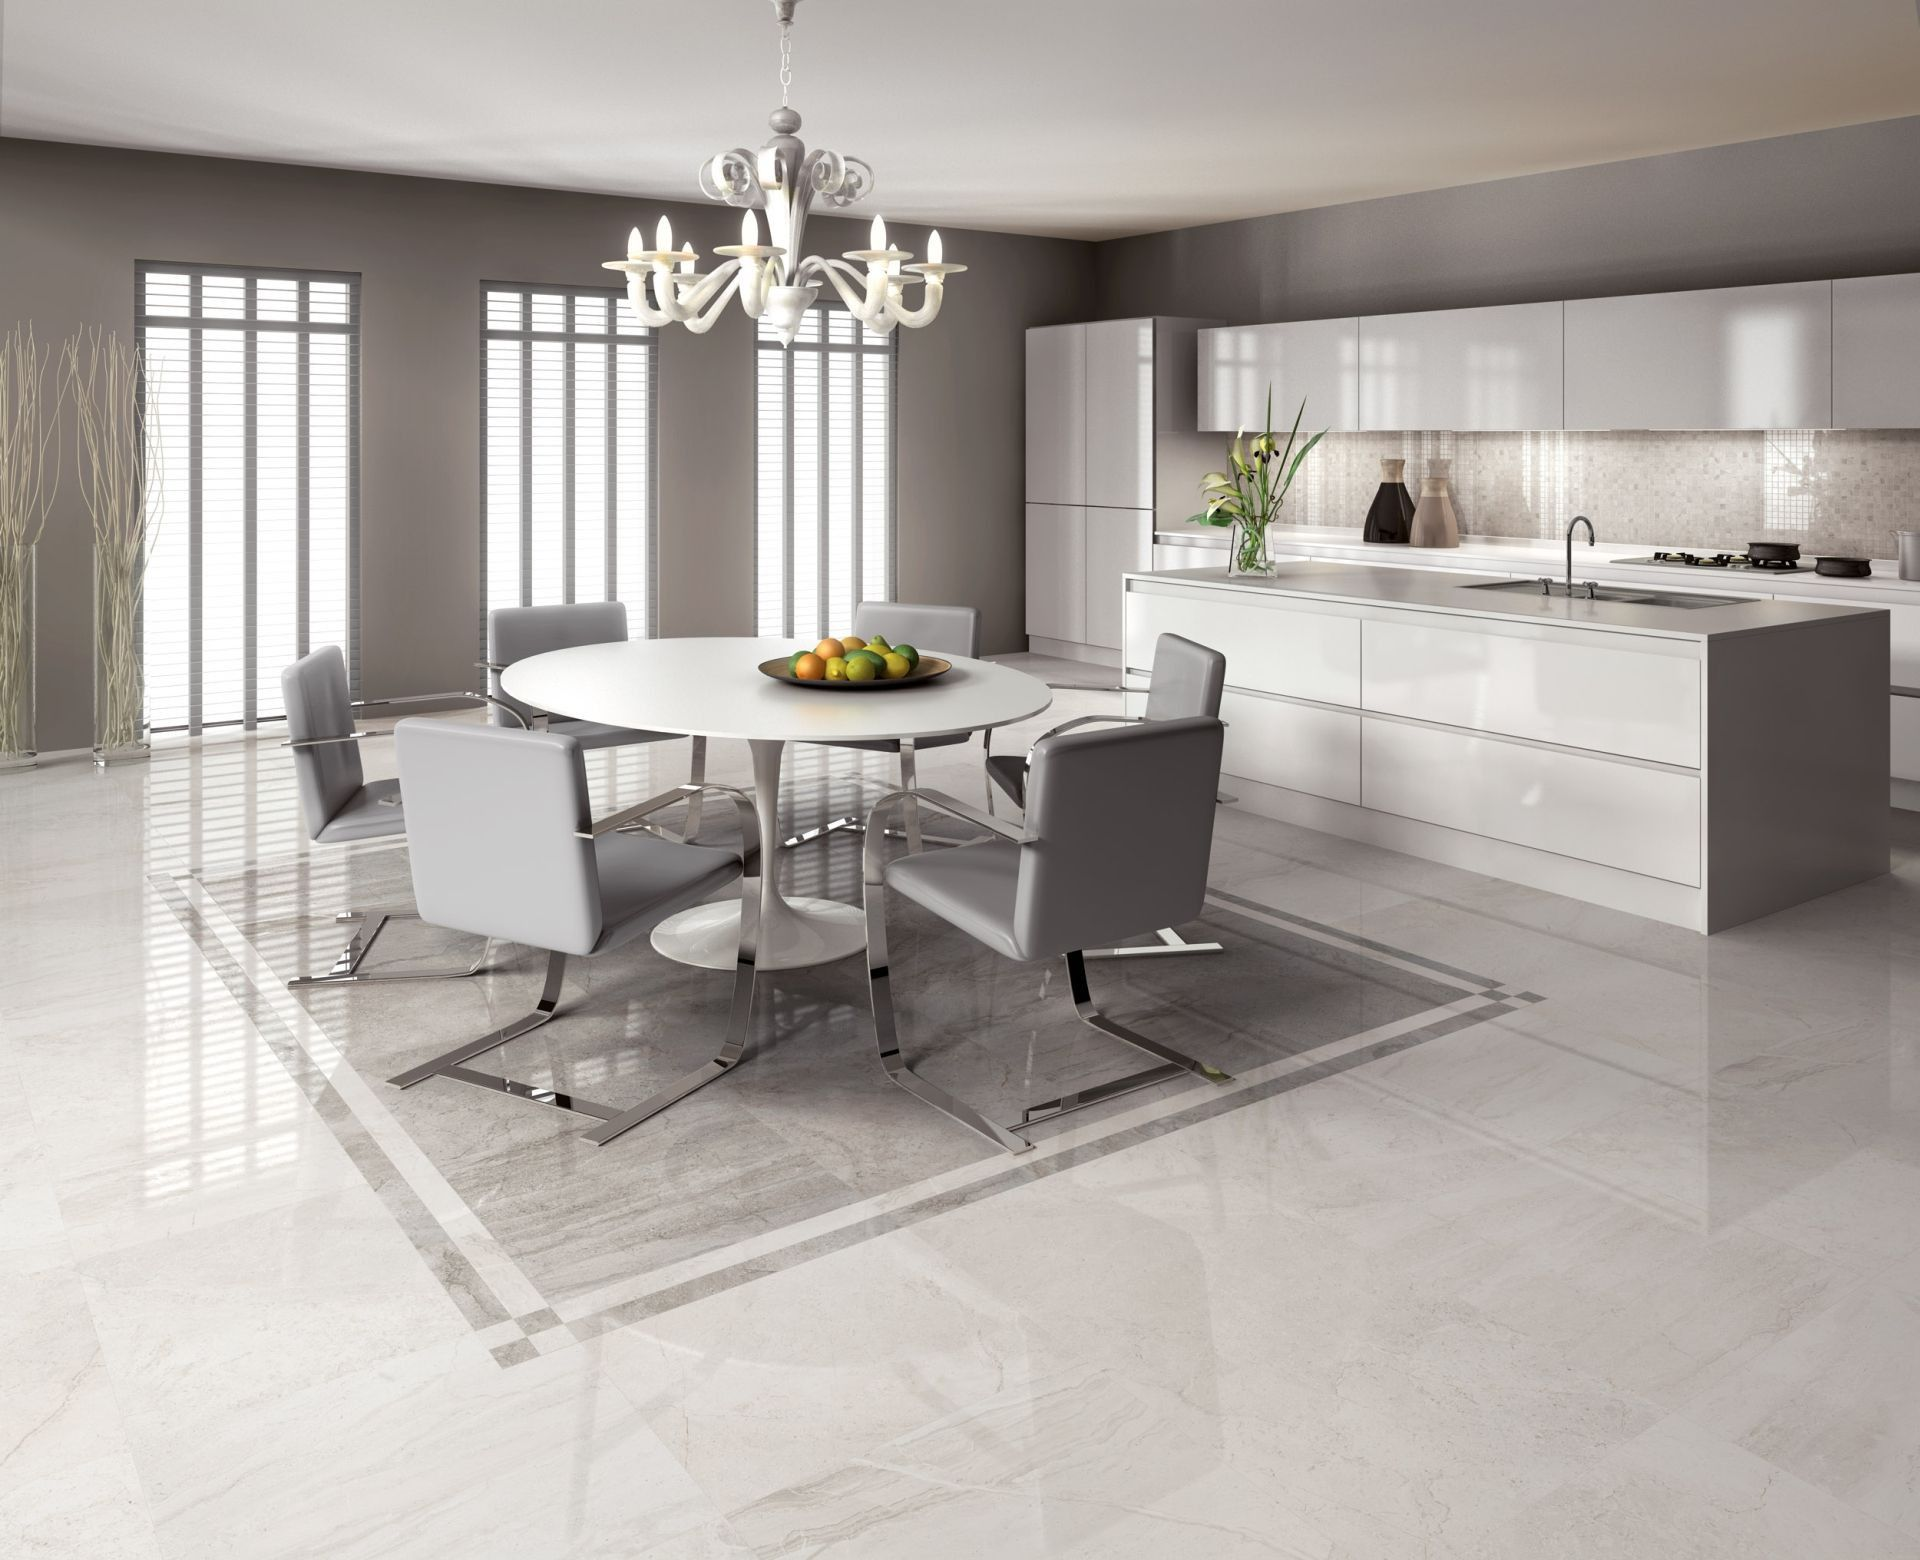 Lusso Pavimenti Cucina Moderna In 2020 Kitchen Flooring Open Plan Kitchen Living Room Marble Flooring Design